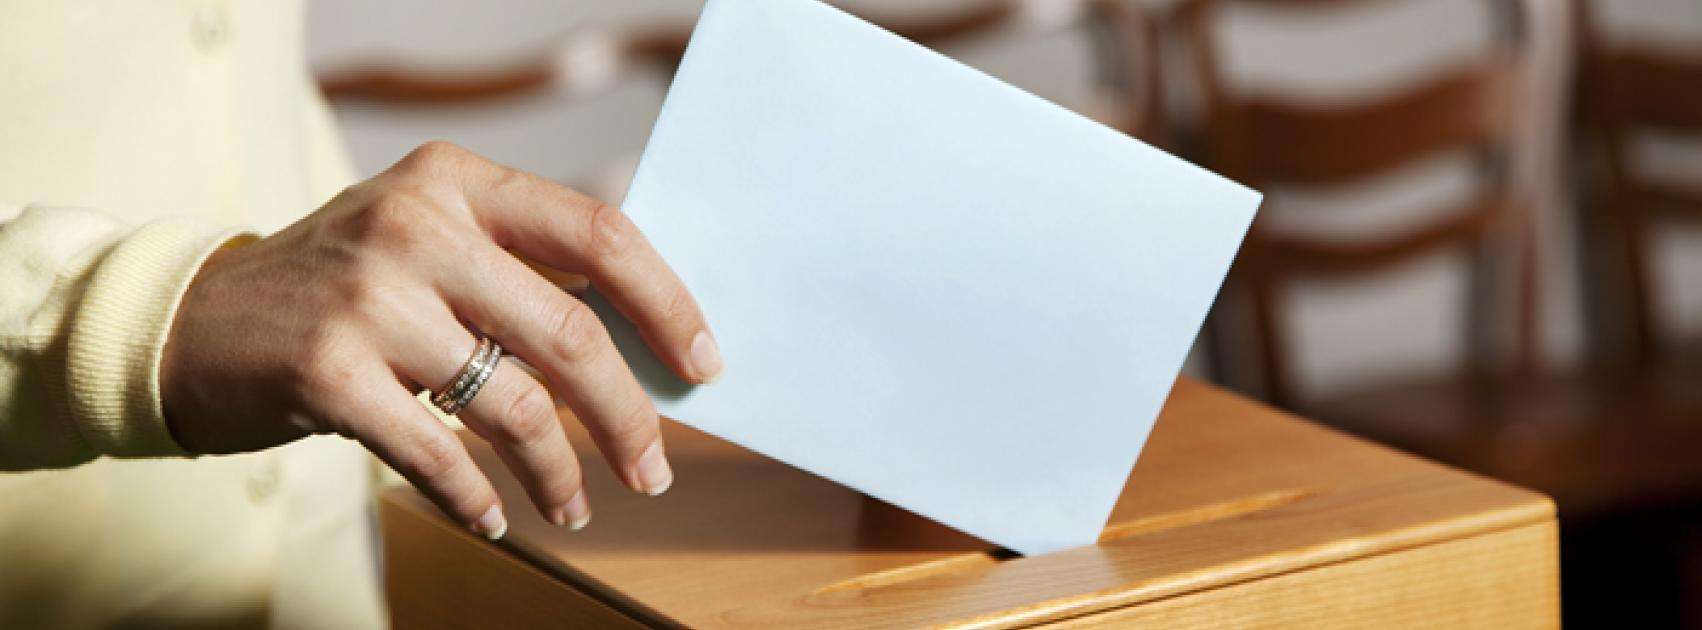 voting_picture_2.jpg